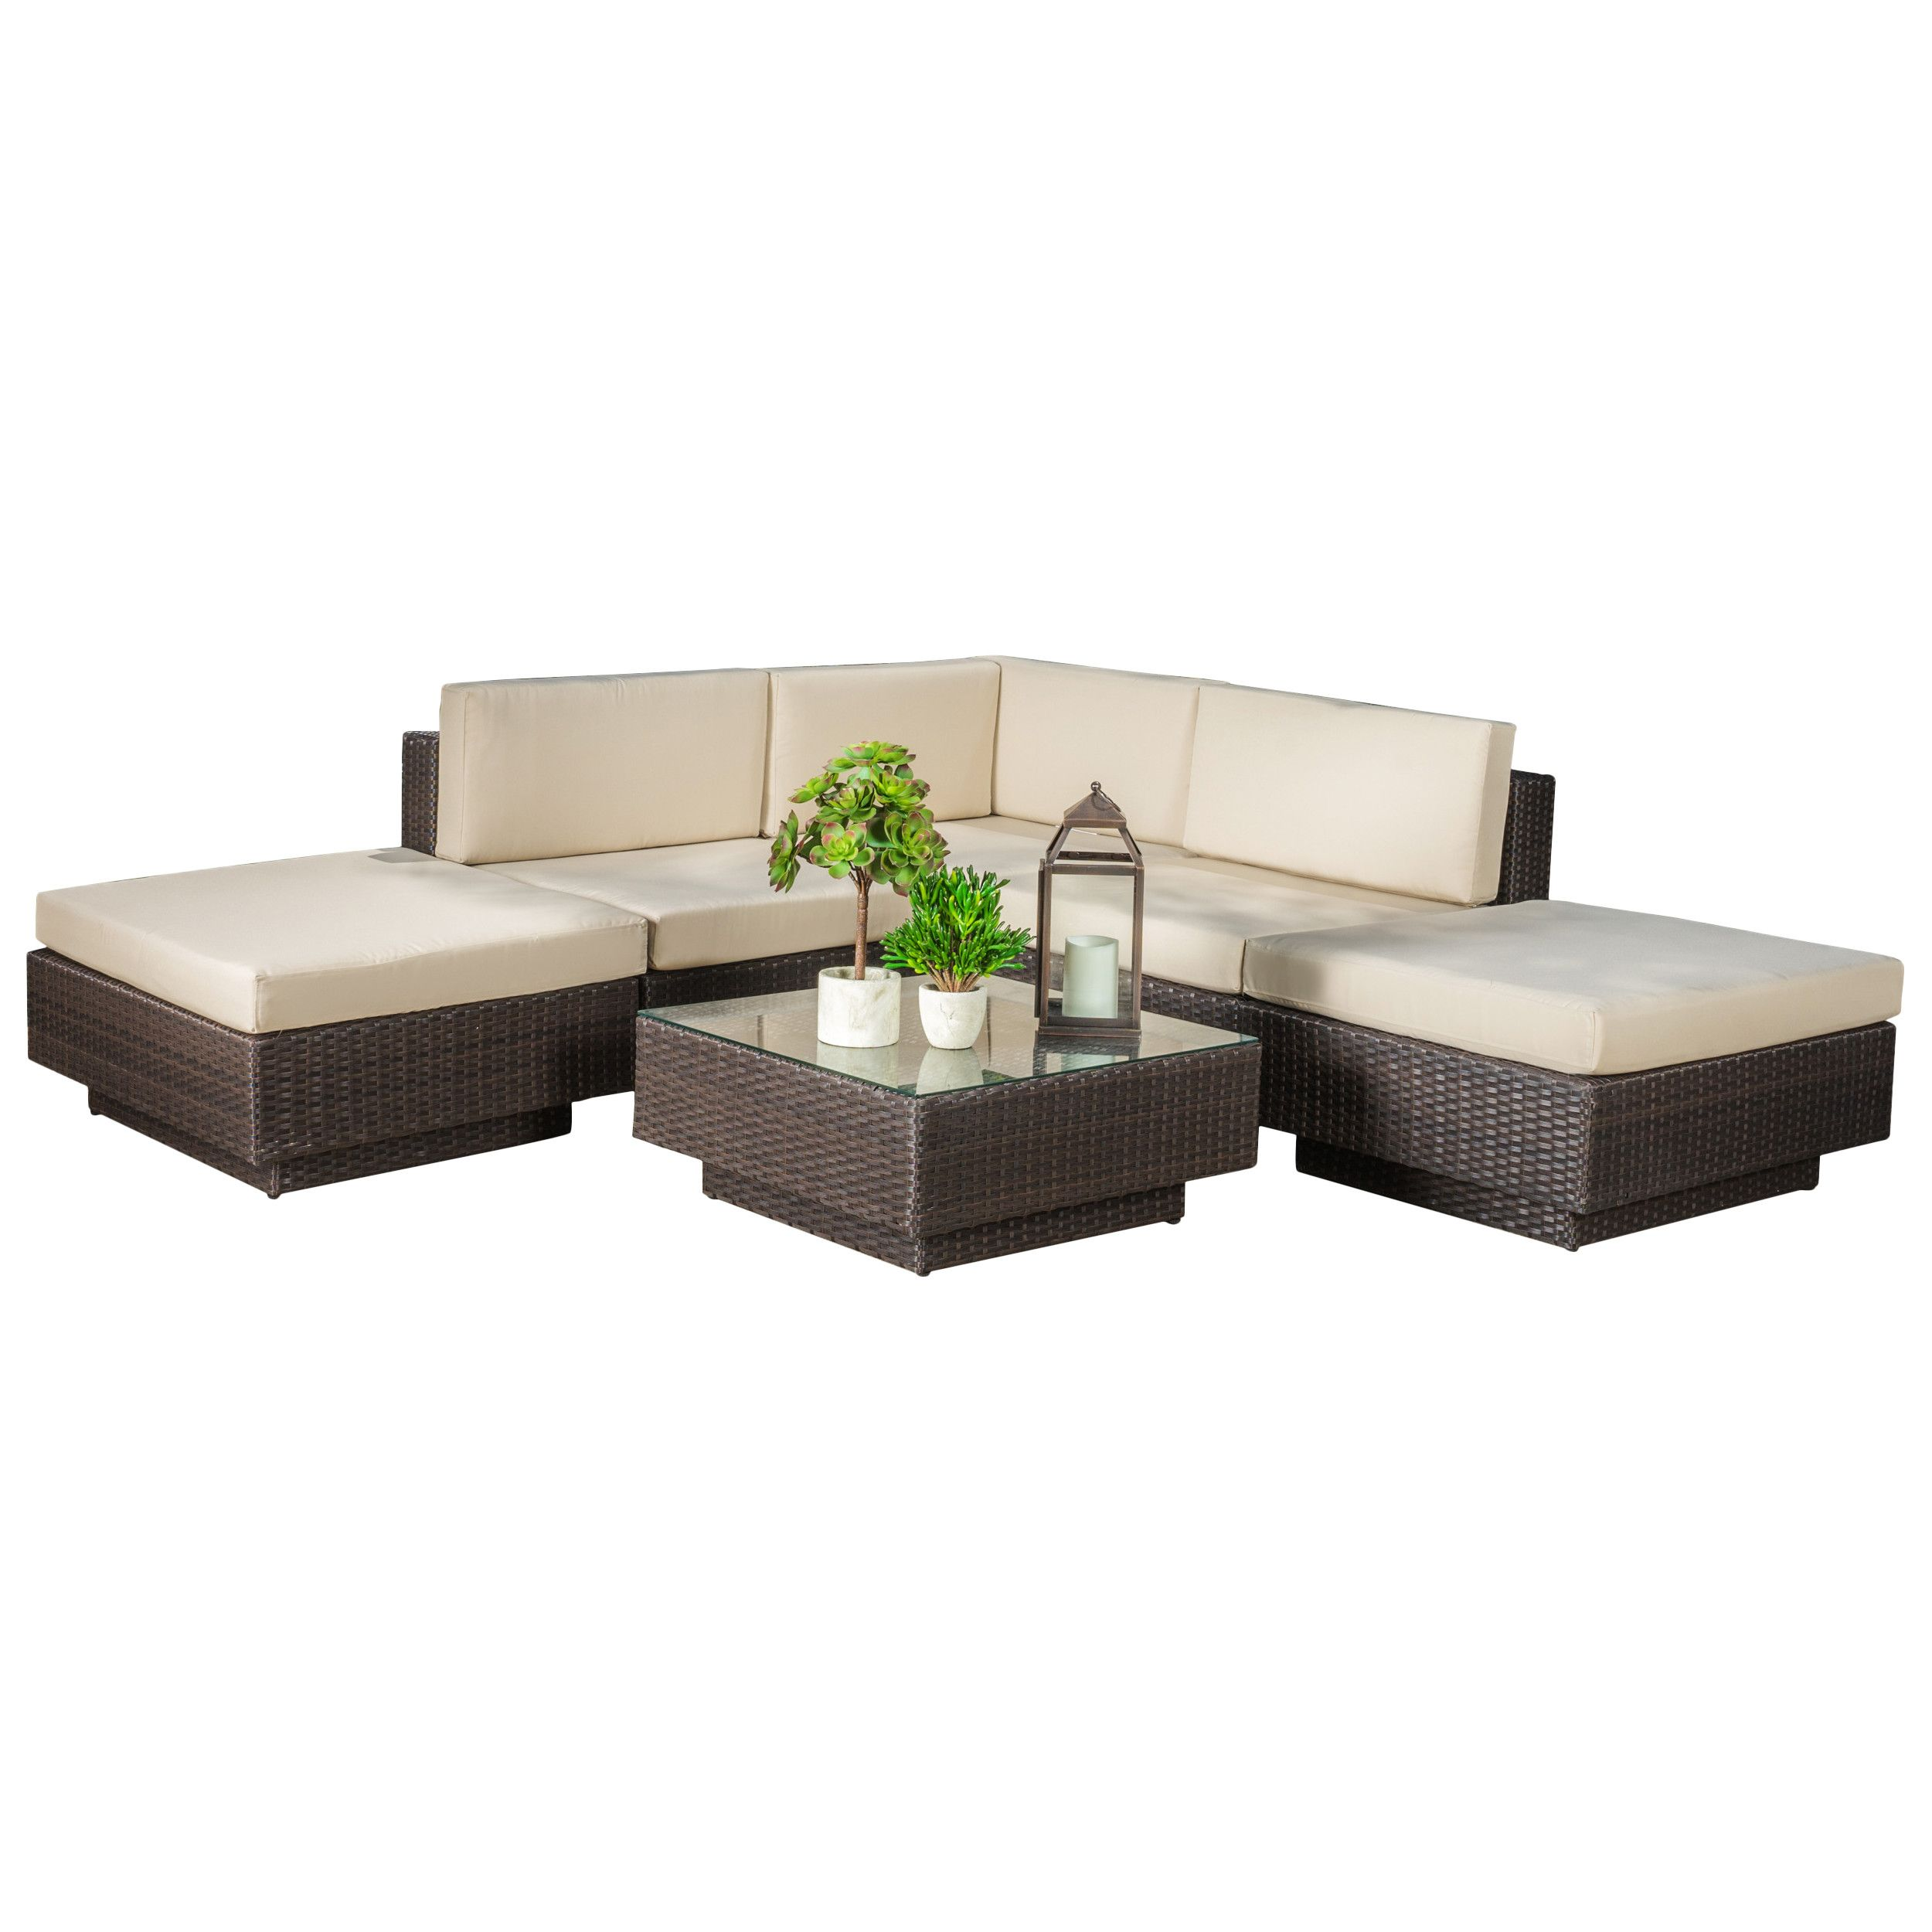 Marcano 6 Piece Sectional Set with Cushions